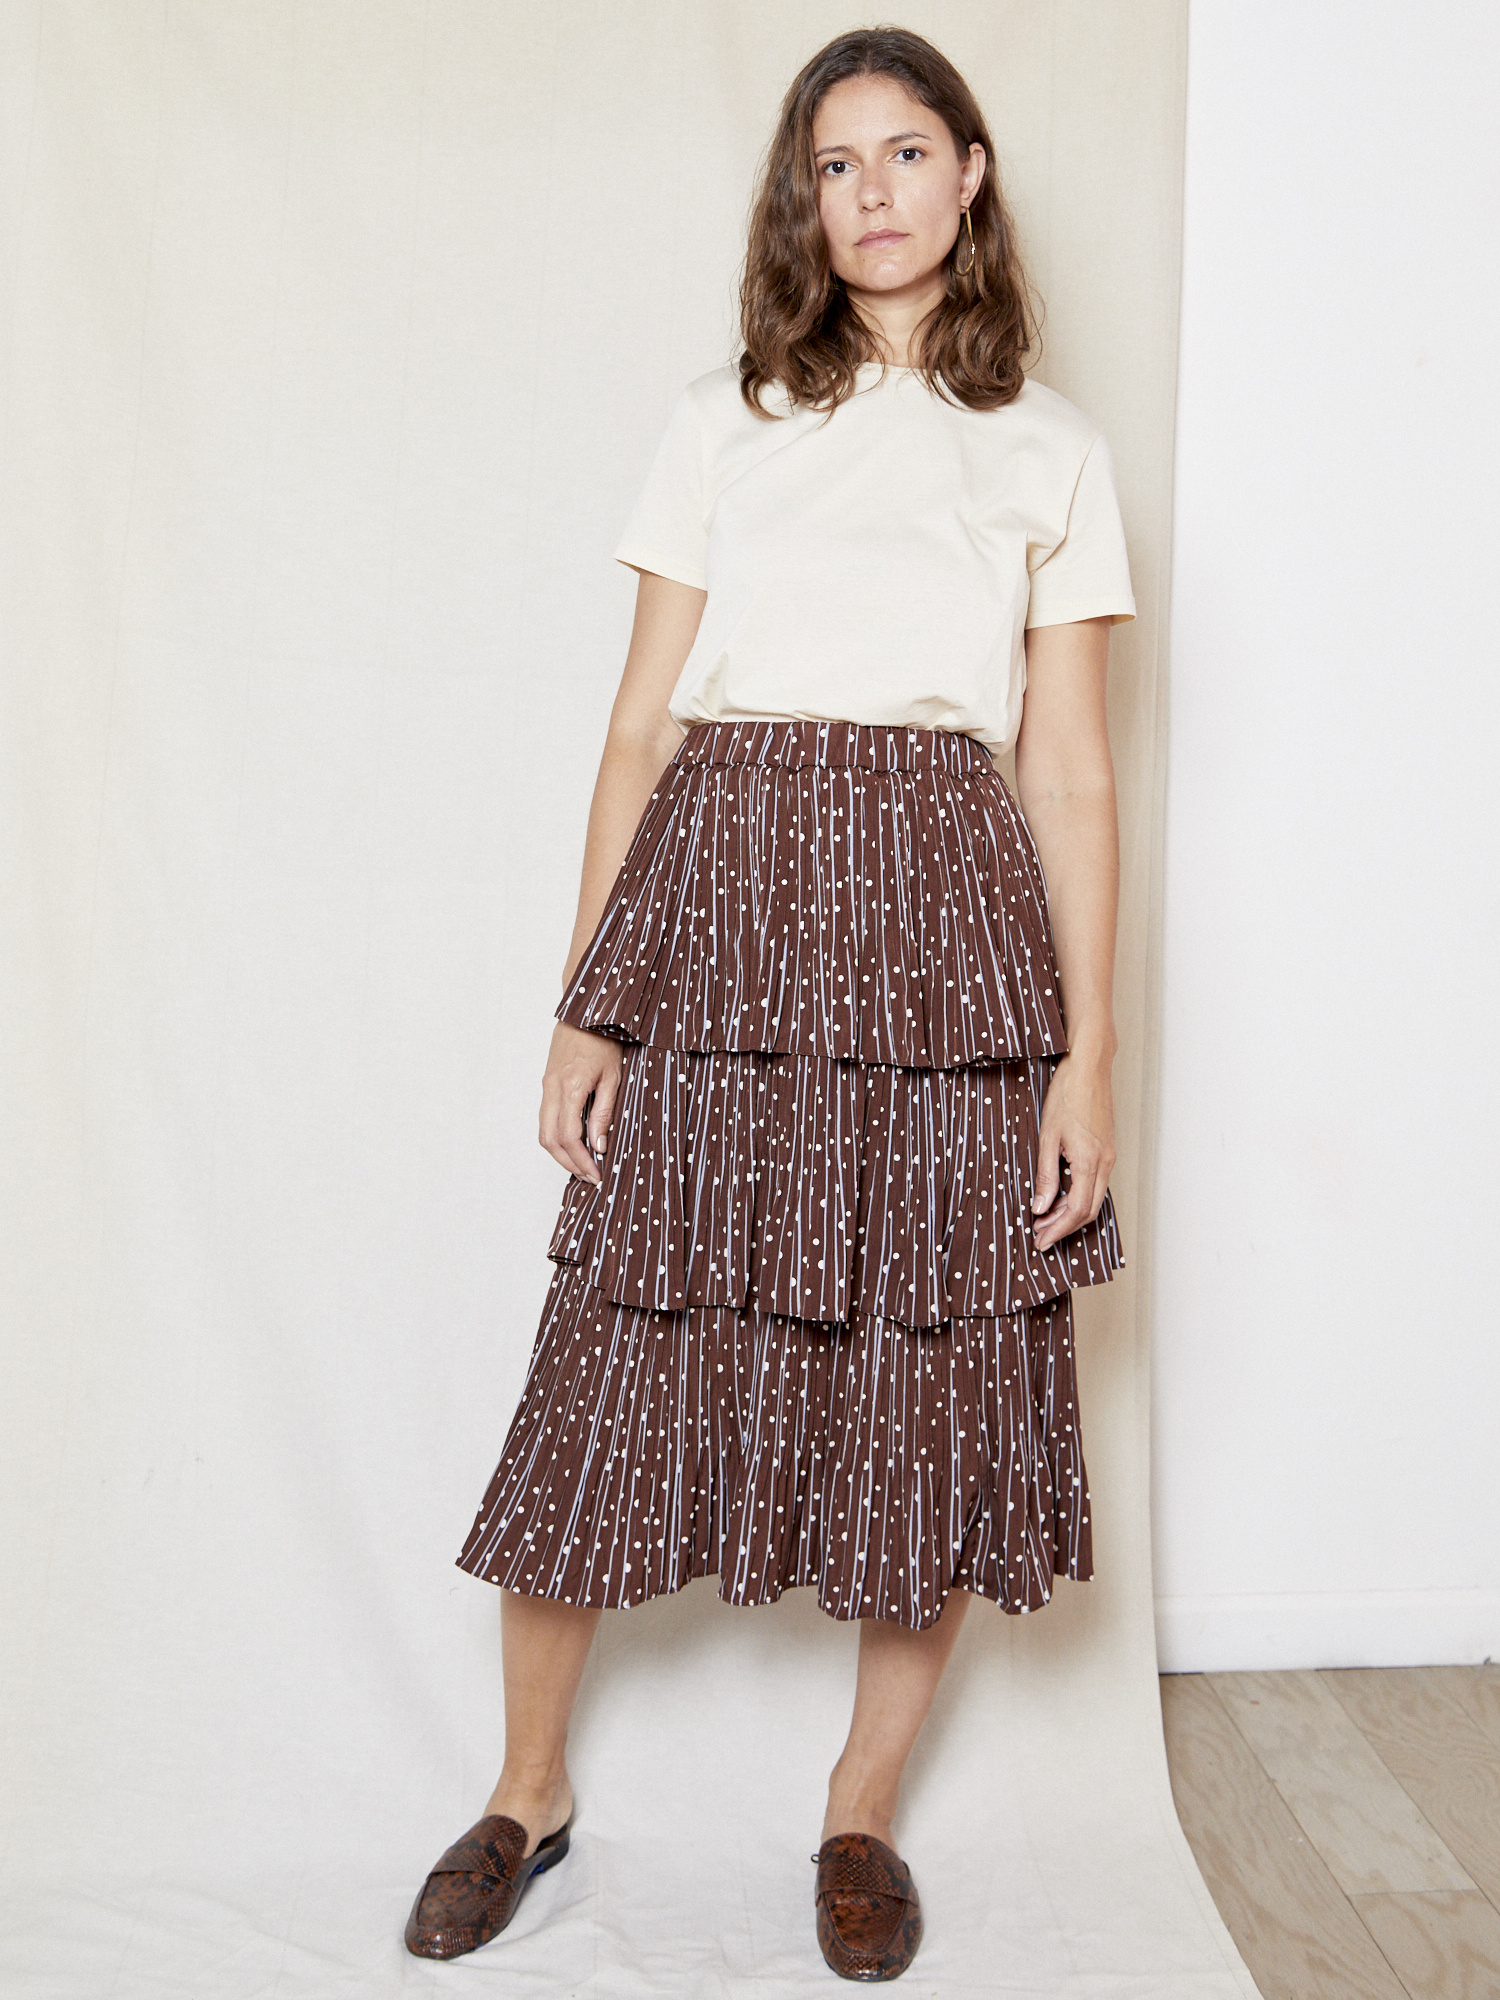 Erica Anna Brown Printed Skirt